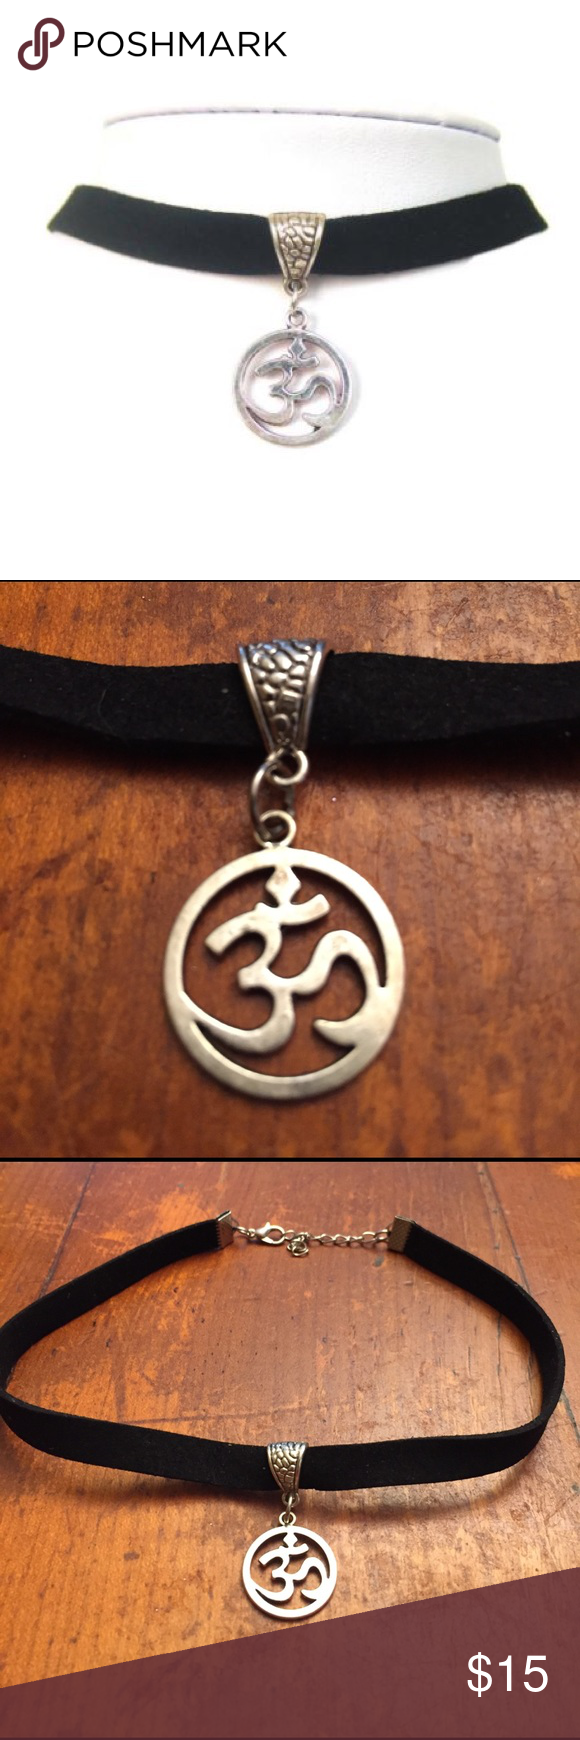 """Hipster Ohm Pendant Choker Necklace Hipster Ohm Pendant Choker Necklace! Ohm Yoga symbol charm choker on faux suede cord. Pendant size about 0.75"""" Jewelry Necklaces"""